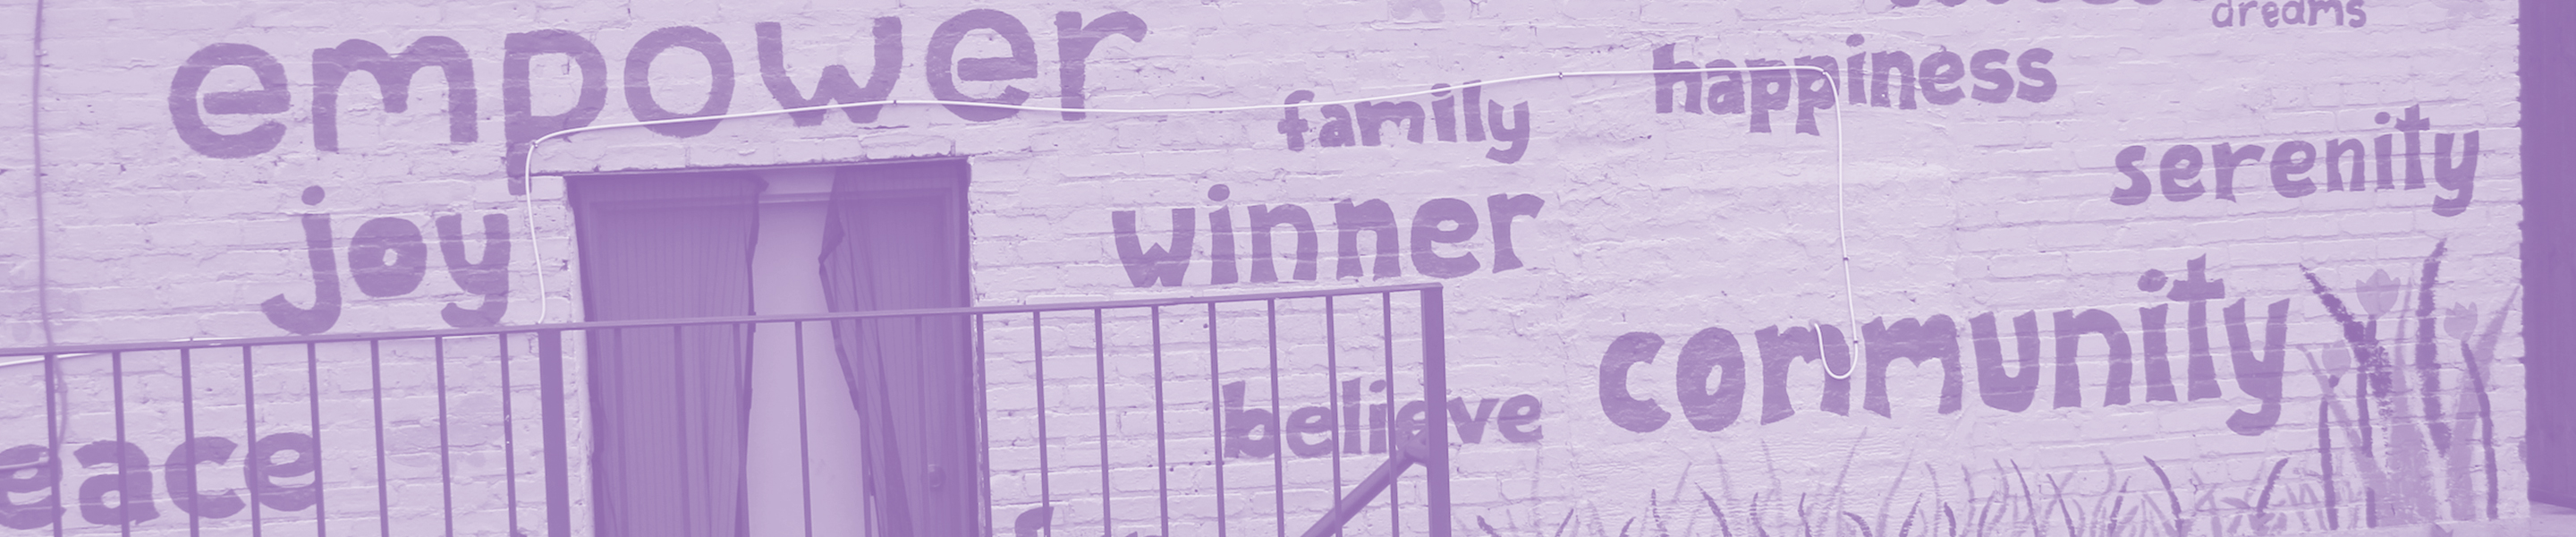 Wall with uplifting words painted on it